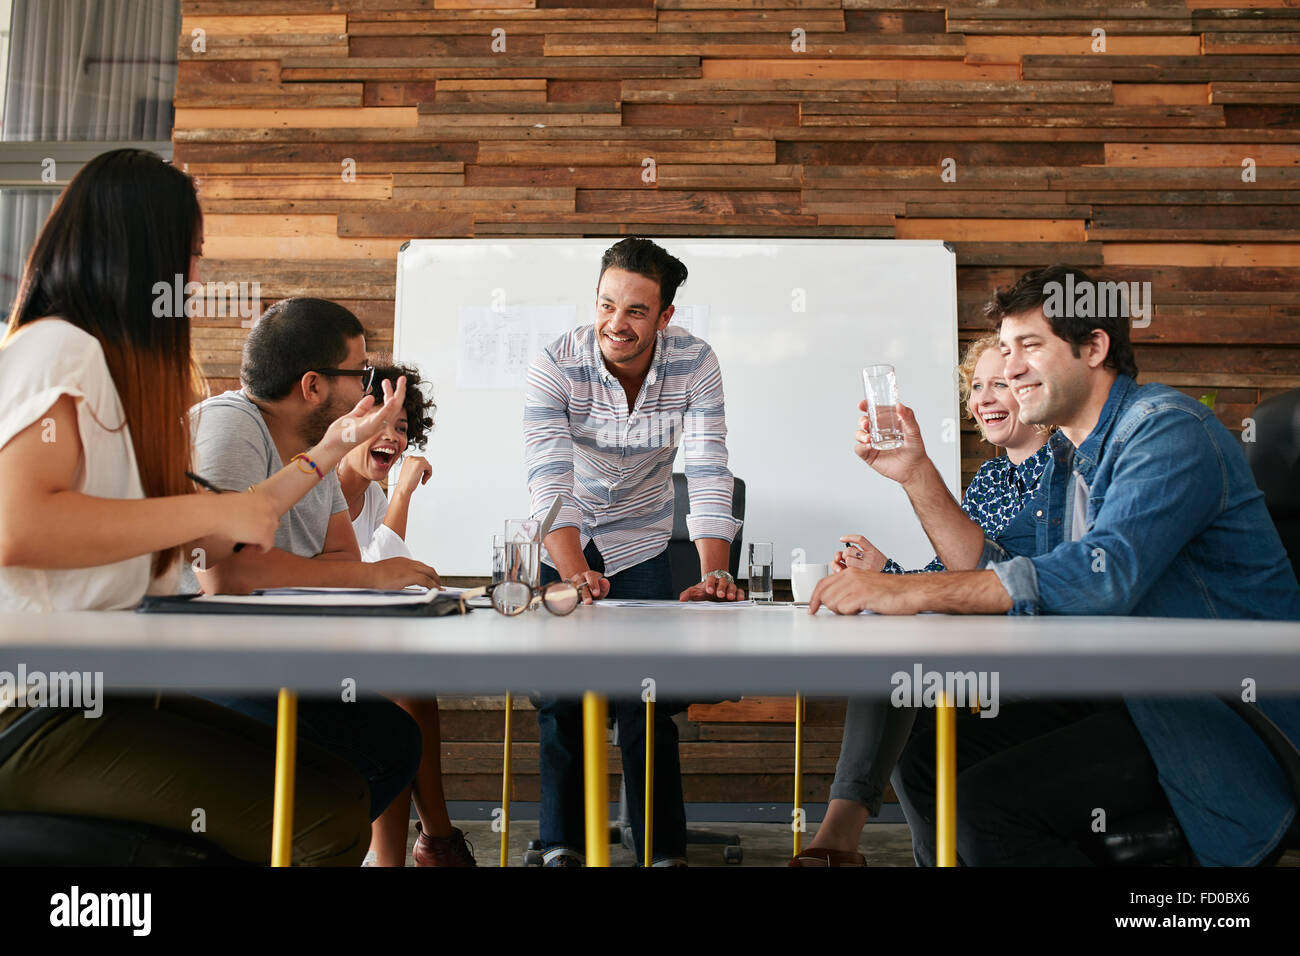 Group of happy young people having a business meeting. Creative people sitting at table in boardroom with man explaining - Stock Image